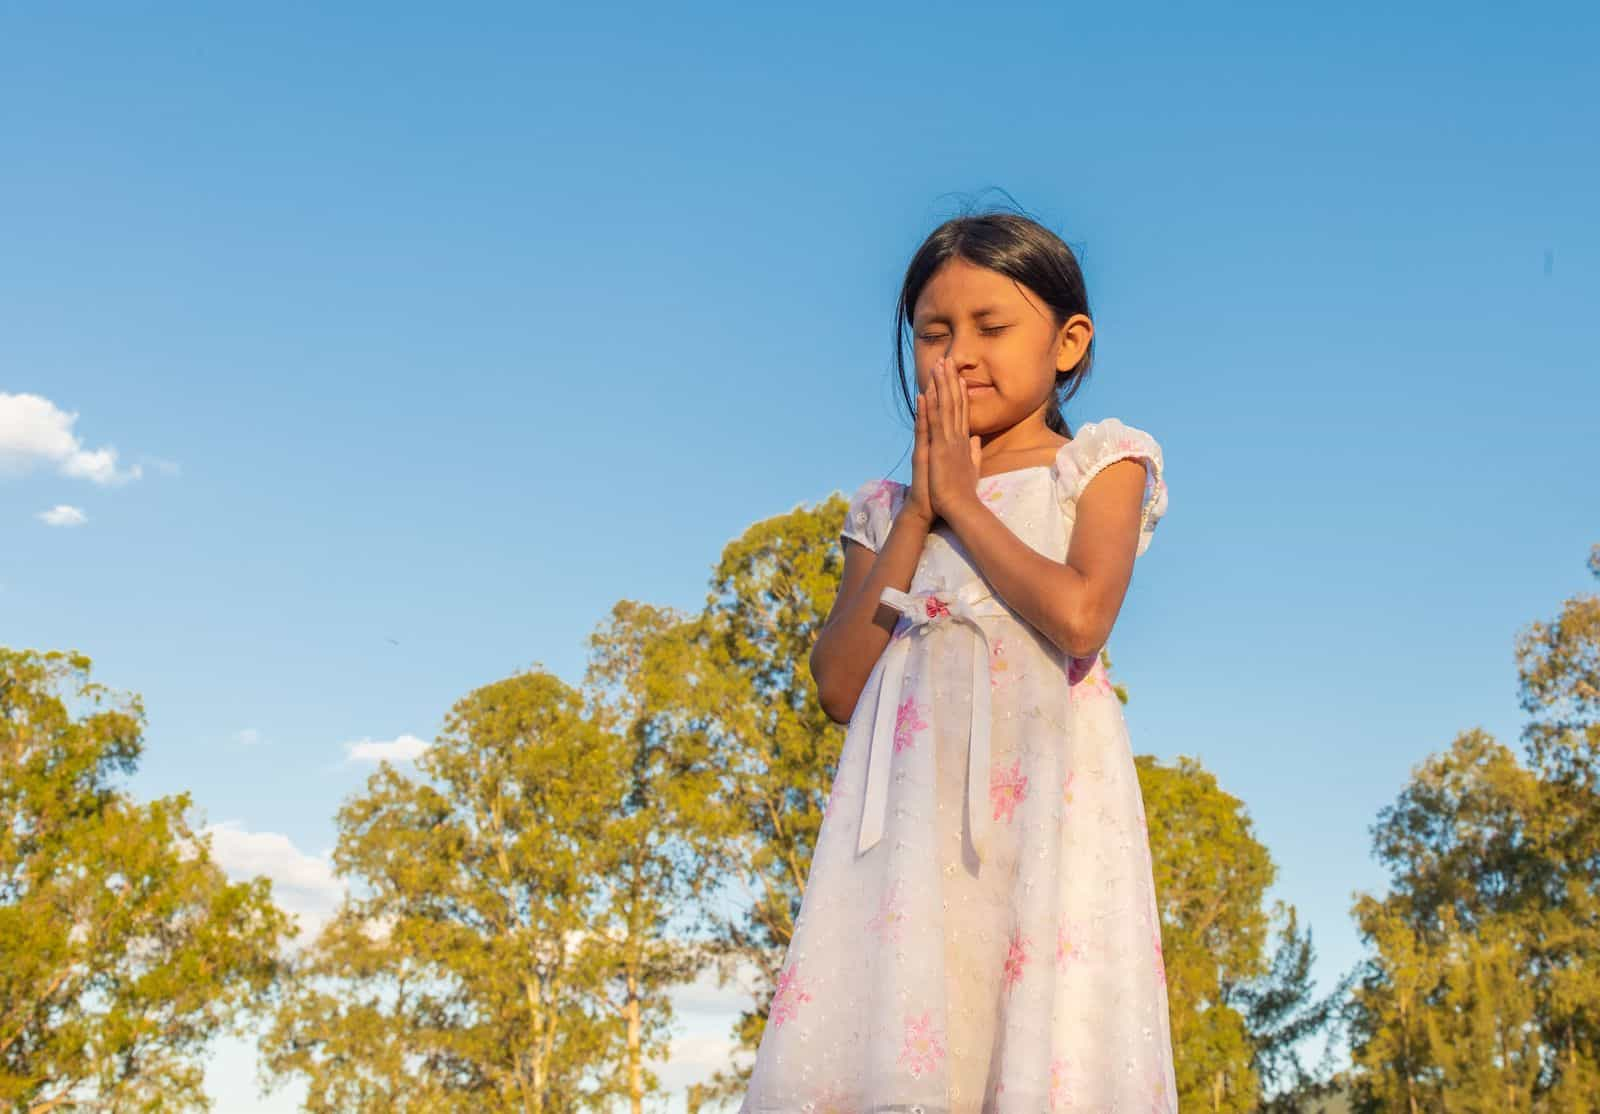 A girl prays, standing outside